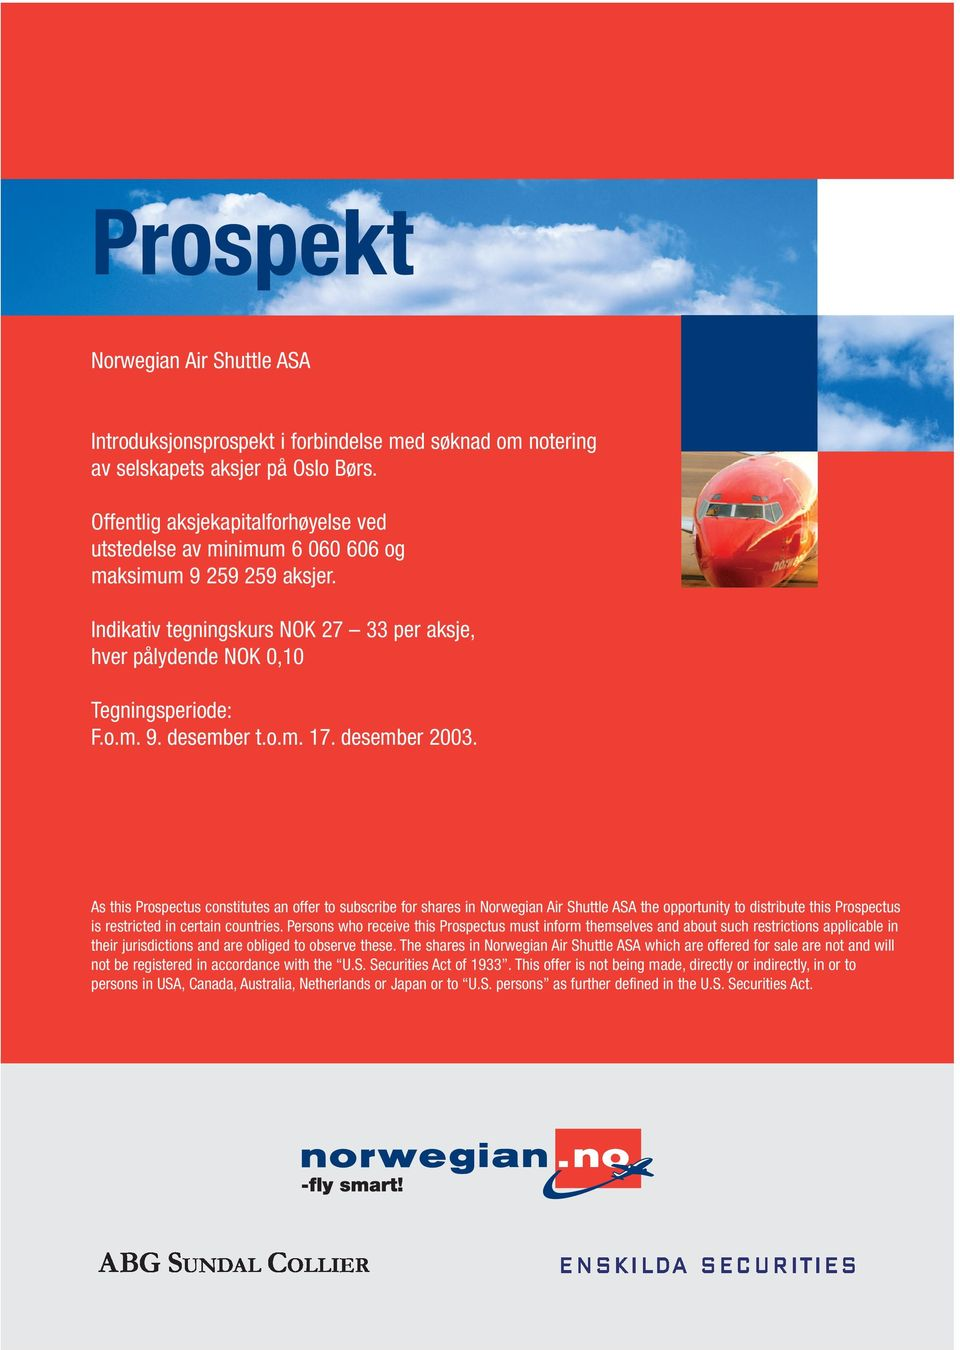 o.m. 17. desember 2003. As this Prospectus constitutes an offer to subscribe for shares in Norwegian Air Shuttle ASA the opportunity to distribute this Prospectus is restricted in certain countries.